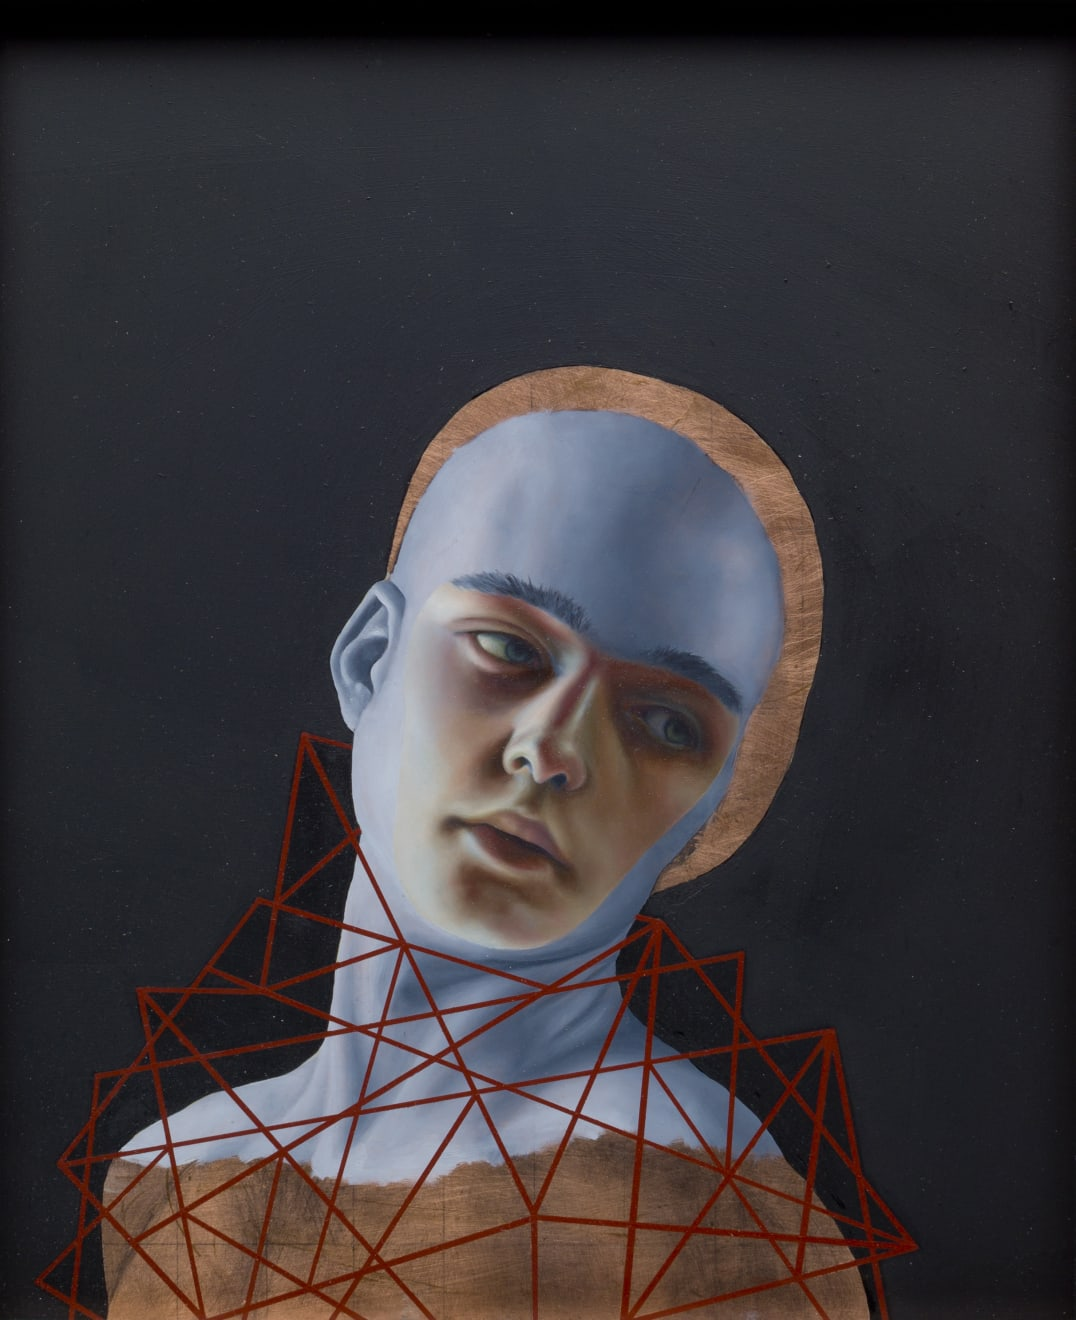 Pippa Young, Self-confined 1, 2017